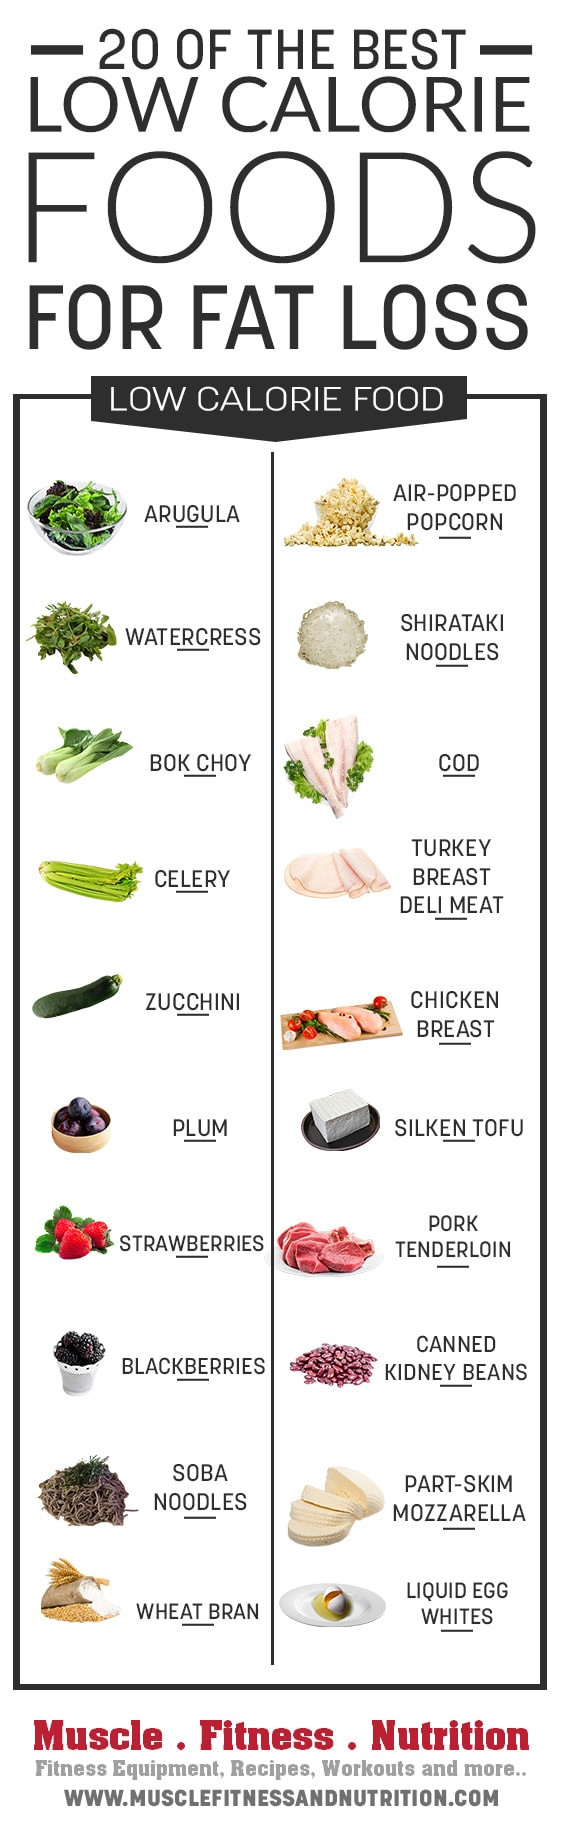 Low Fat Diet Losing Weight Food Lists  20 of the Best Low Calories Foods for Fat Loss